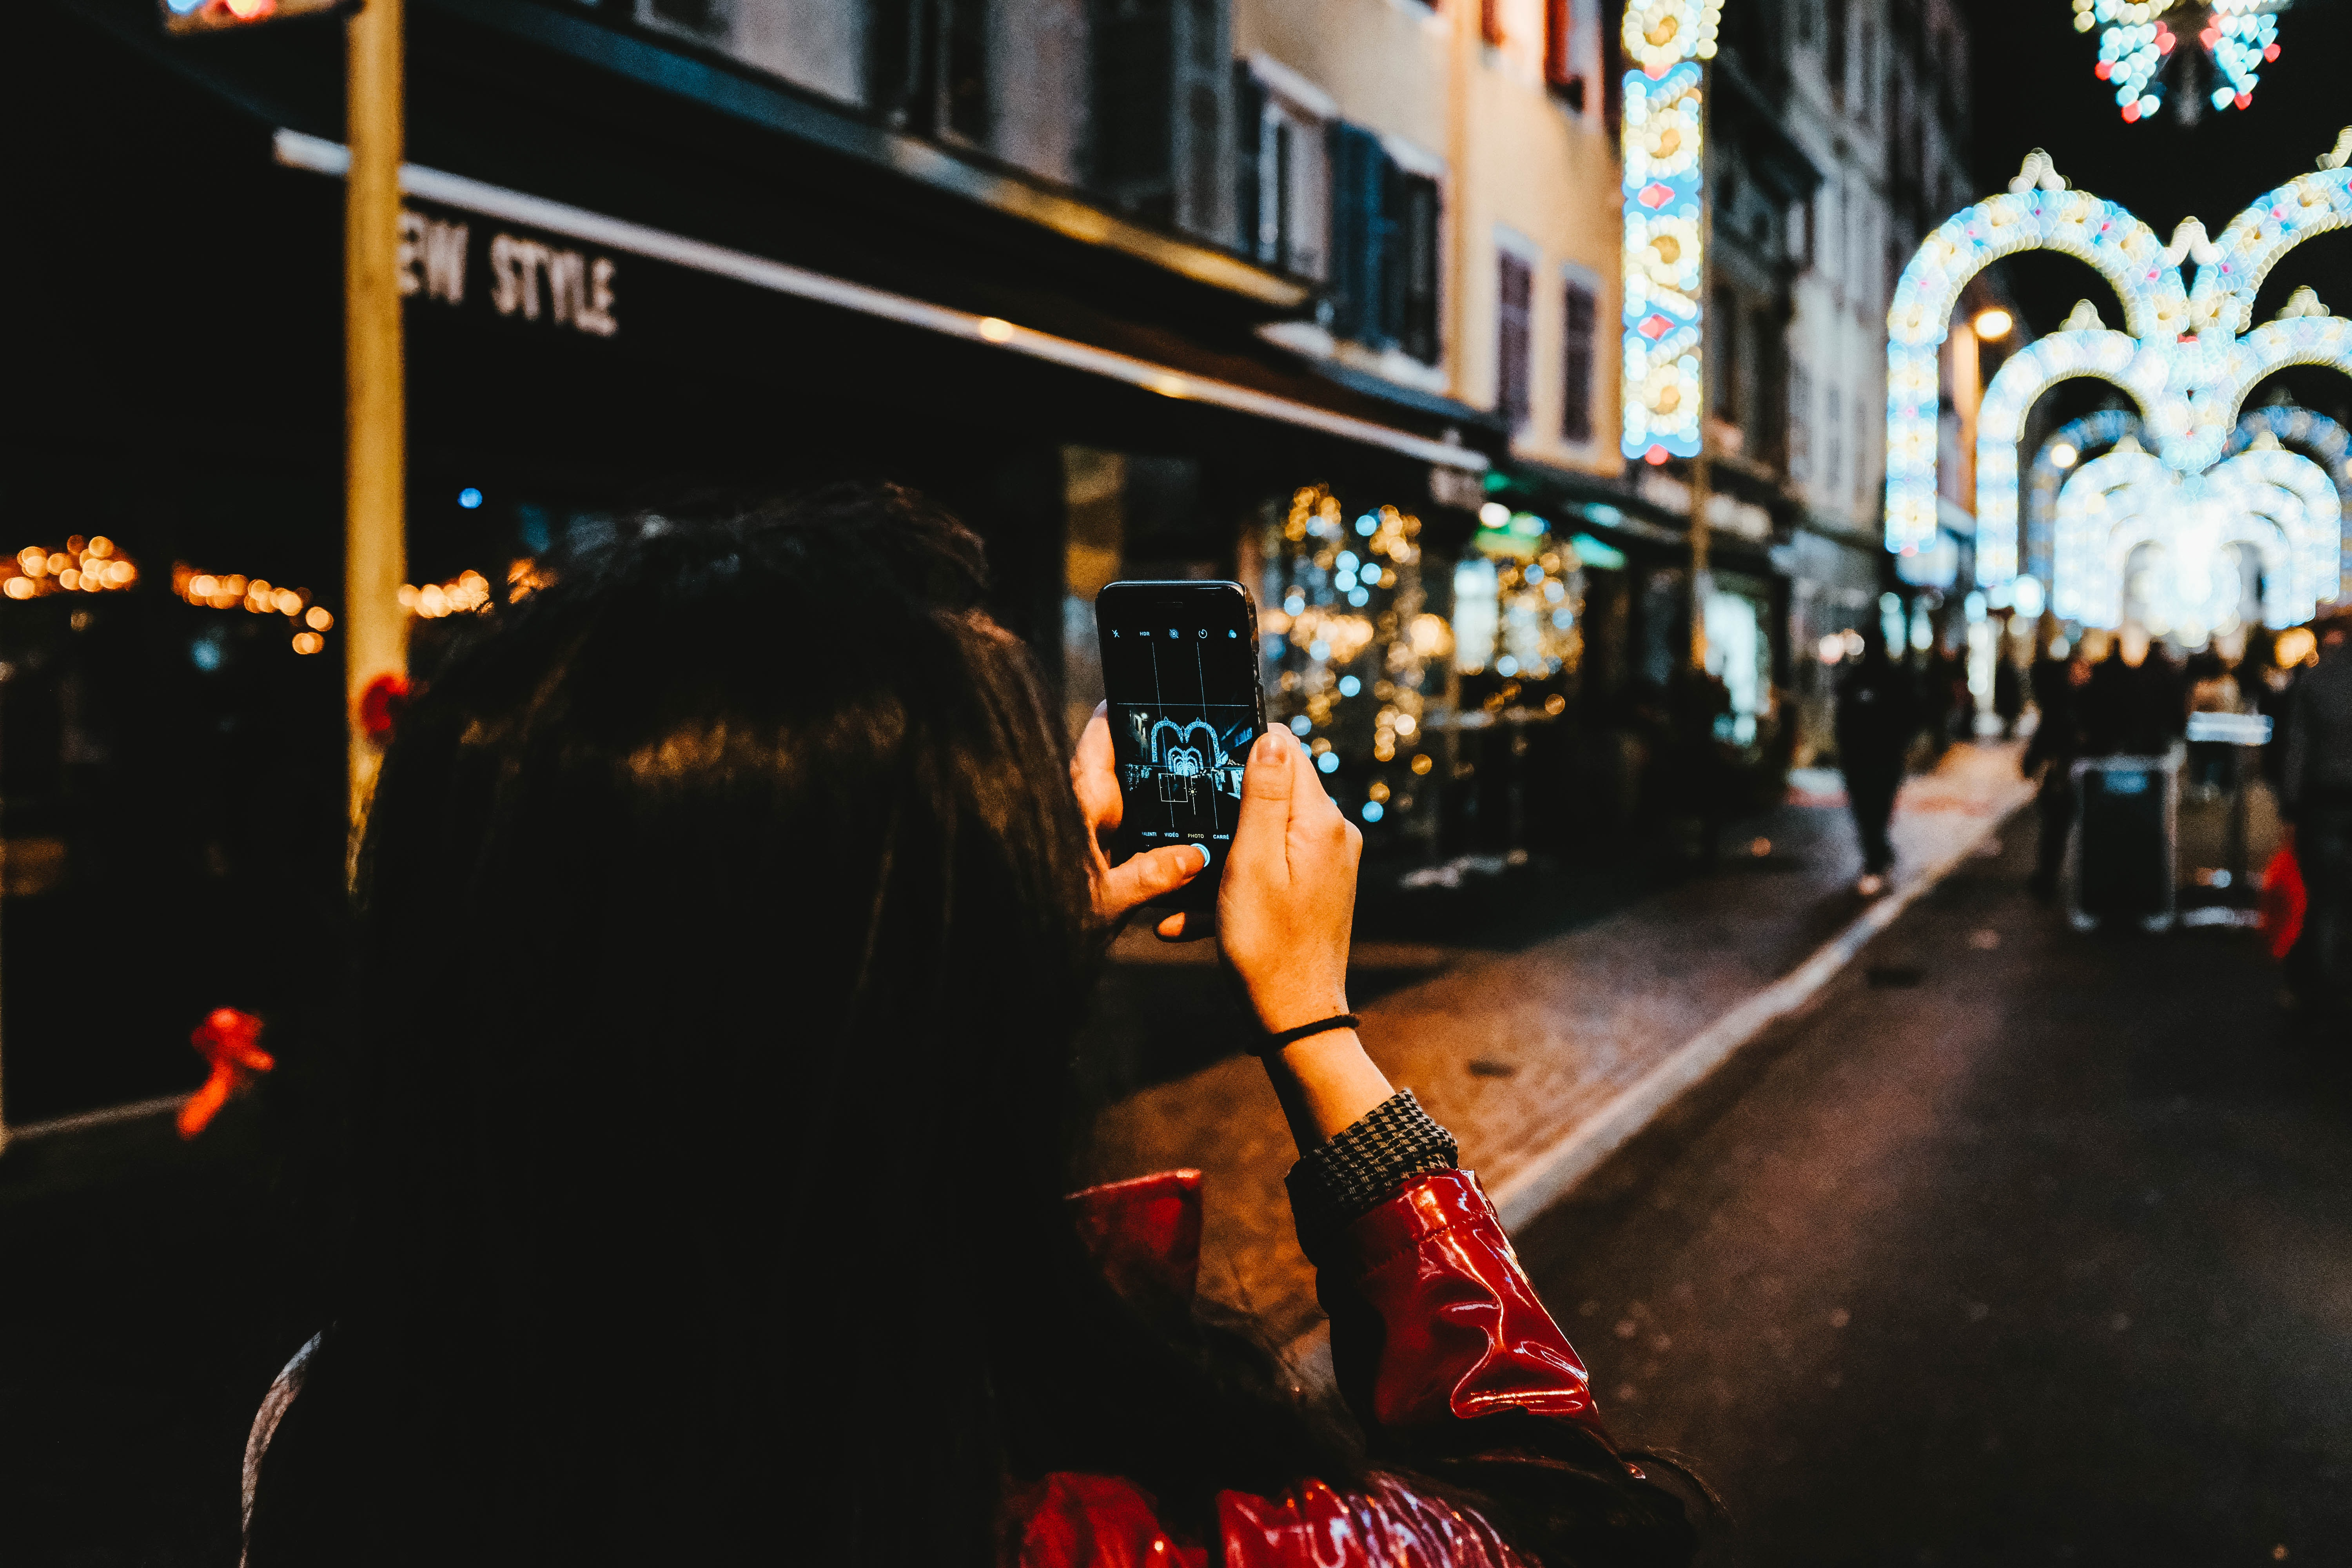 woman taking photo of arched street decors with string lights at night